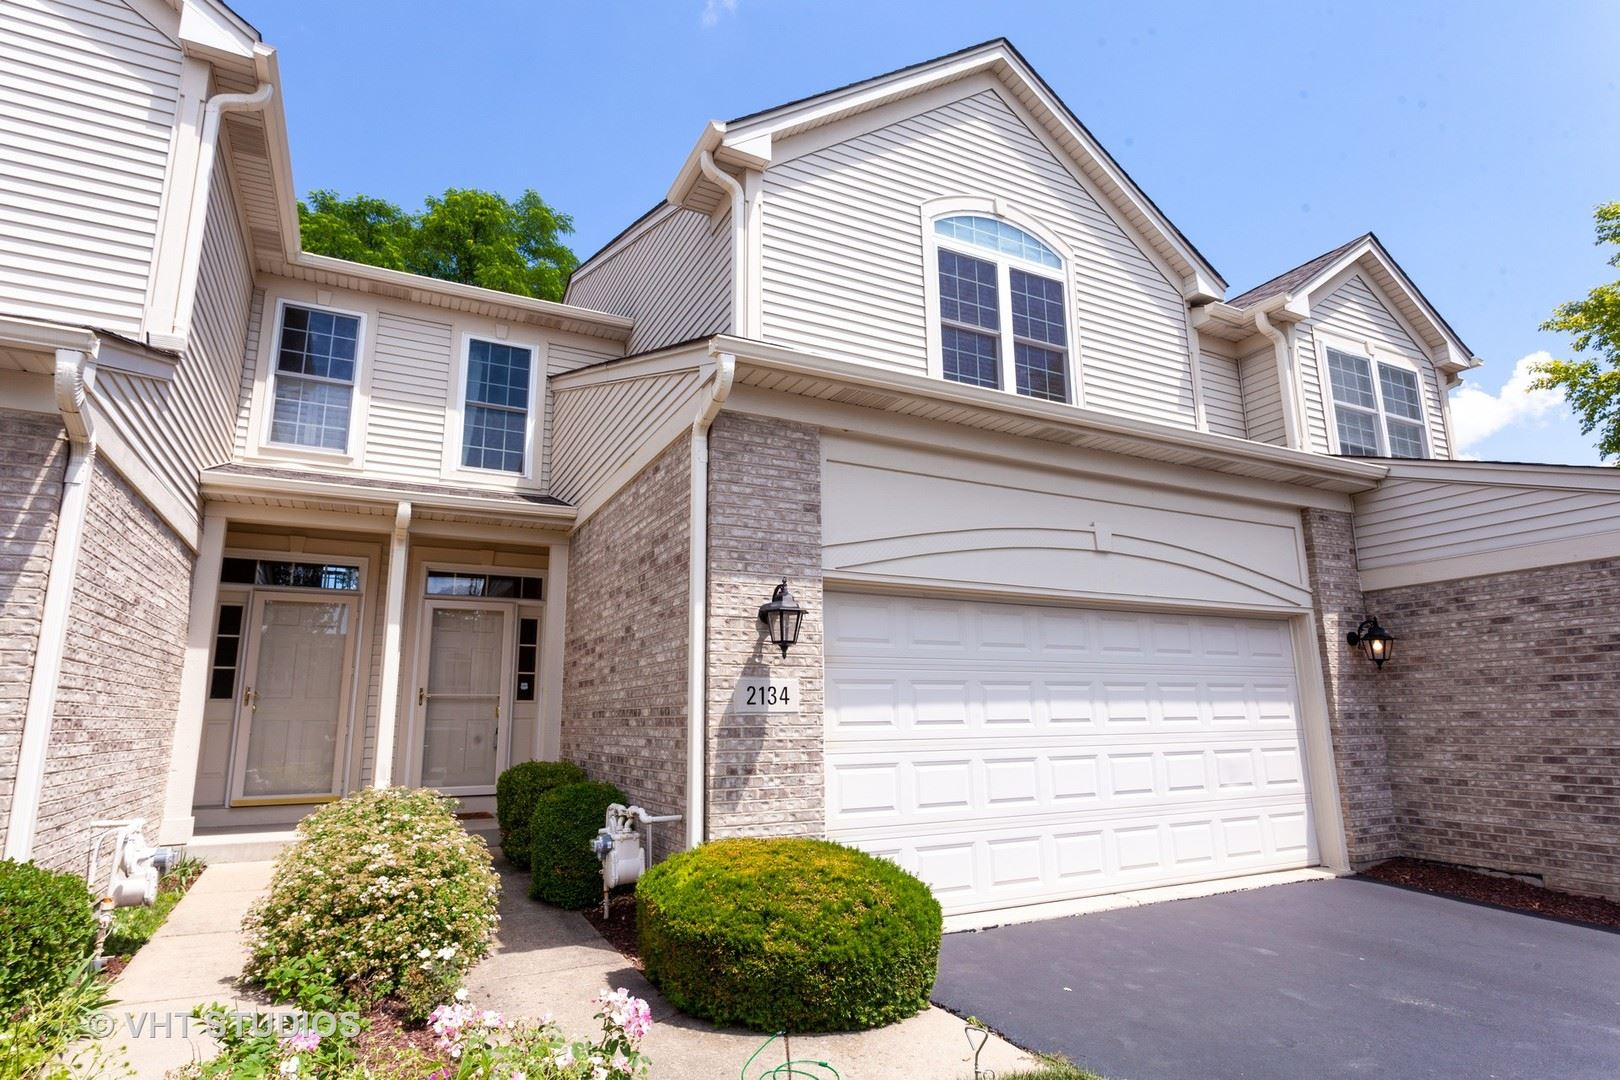 2134 Ashley Court, Downers Grove, IL 60515 - #: 10763136